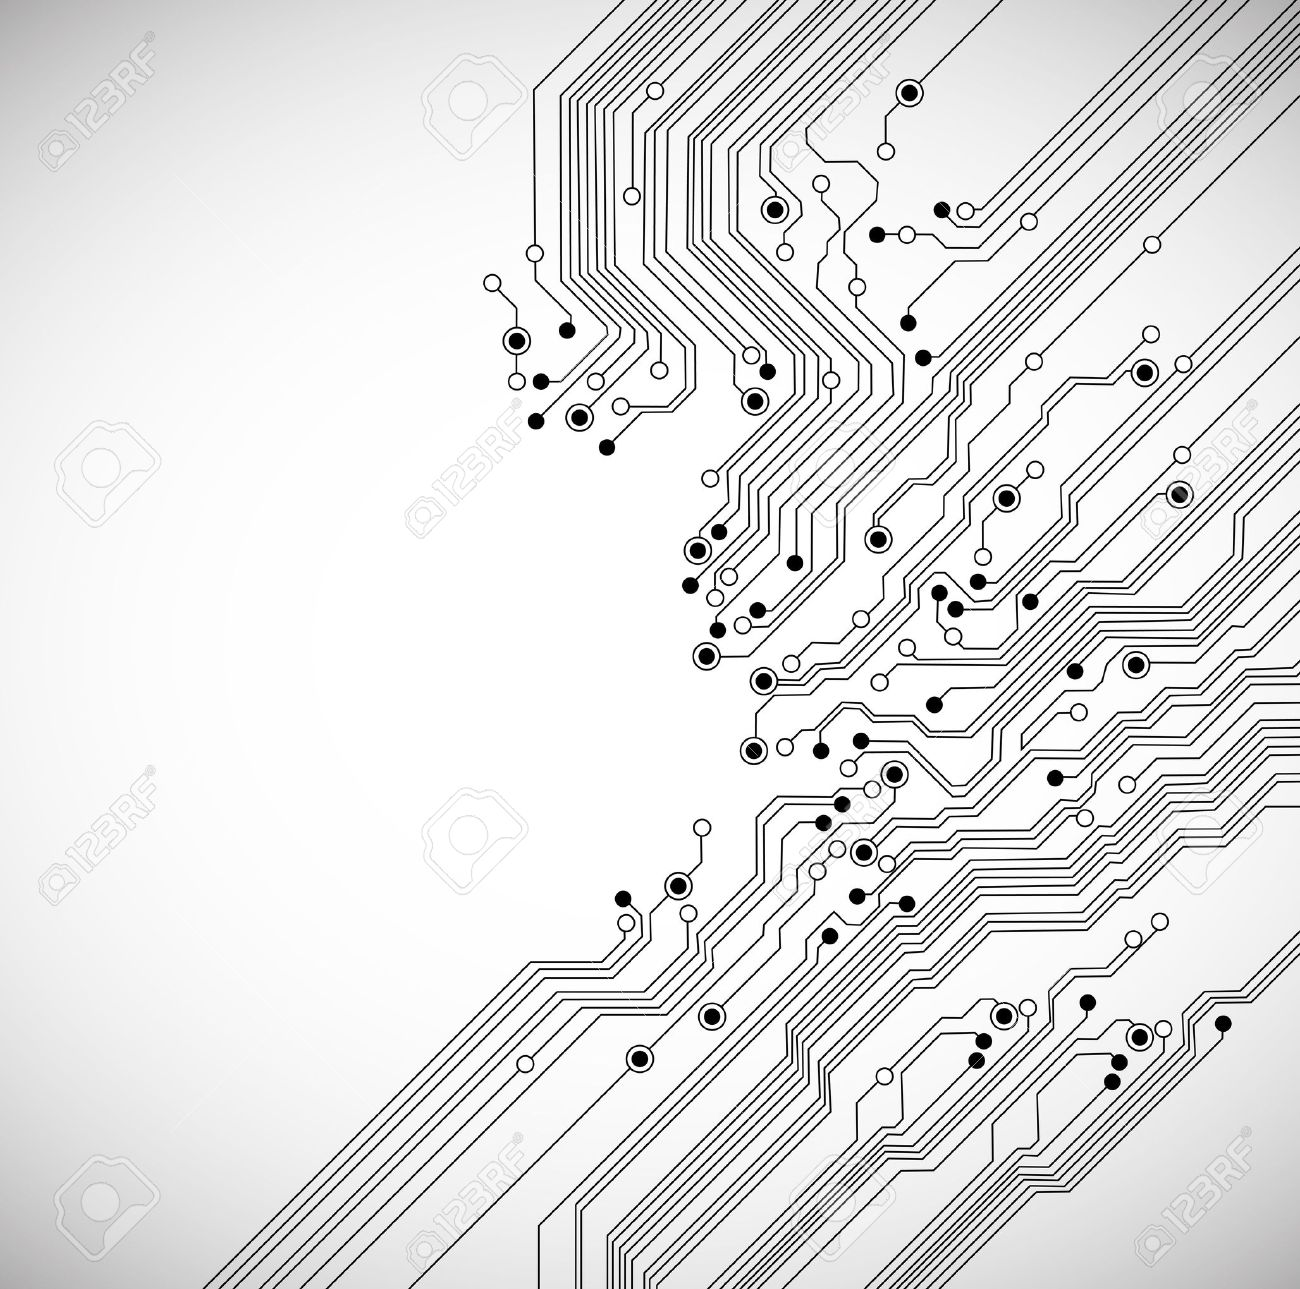 abstract digital technology background with circuit board texture - 11002308